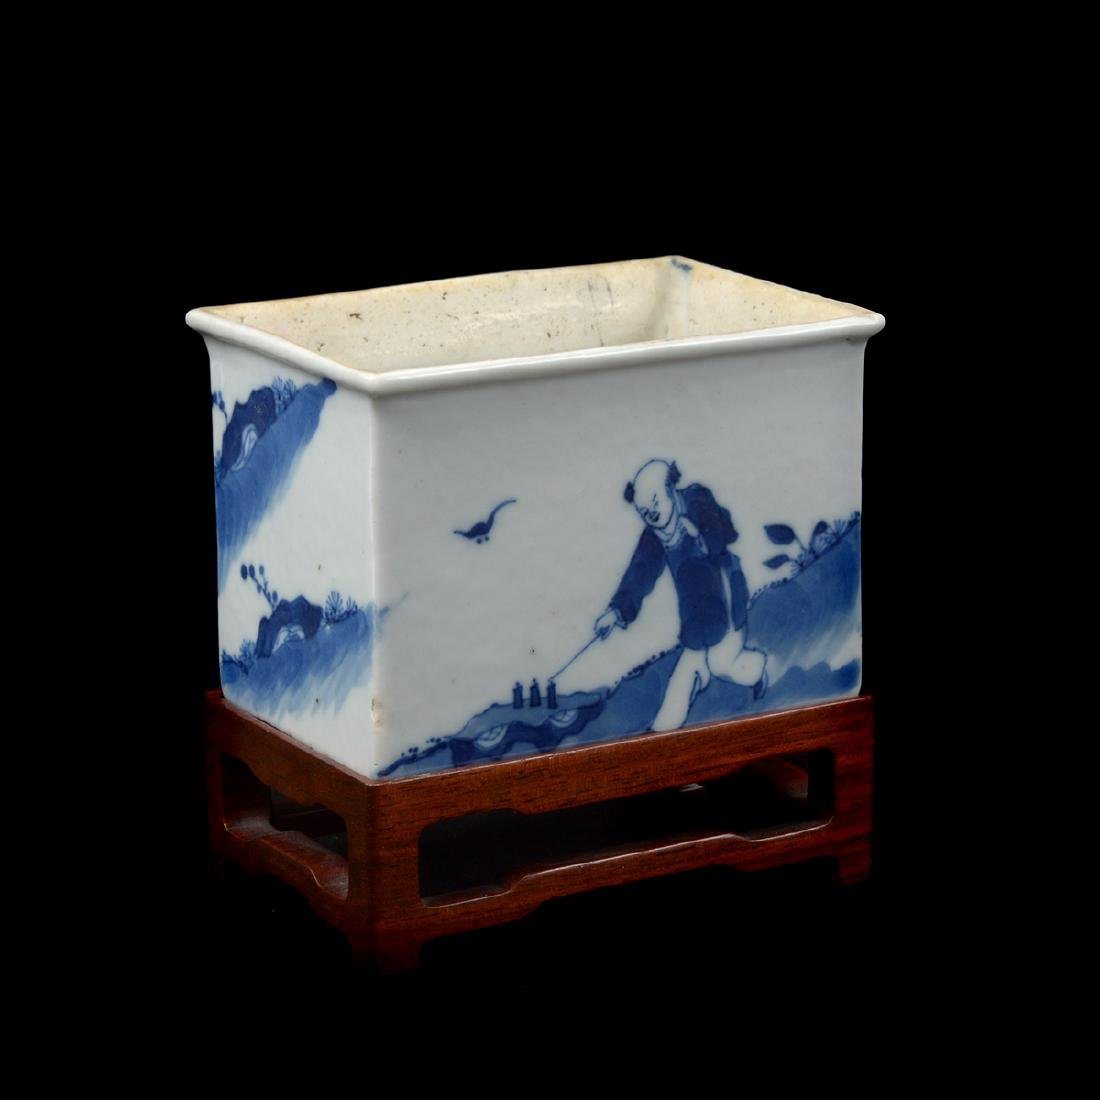 Five Porcelain Scholar's Objects, Late Qing Dynasty - 6